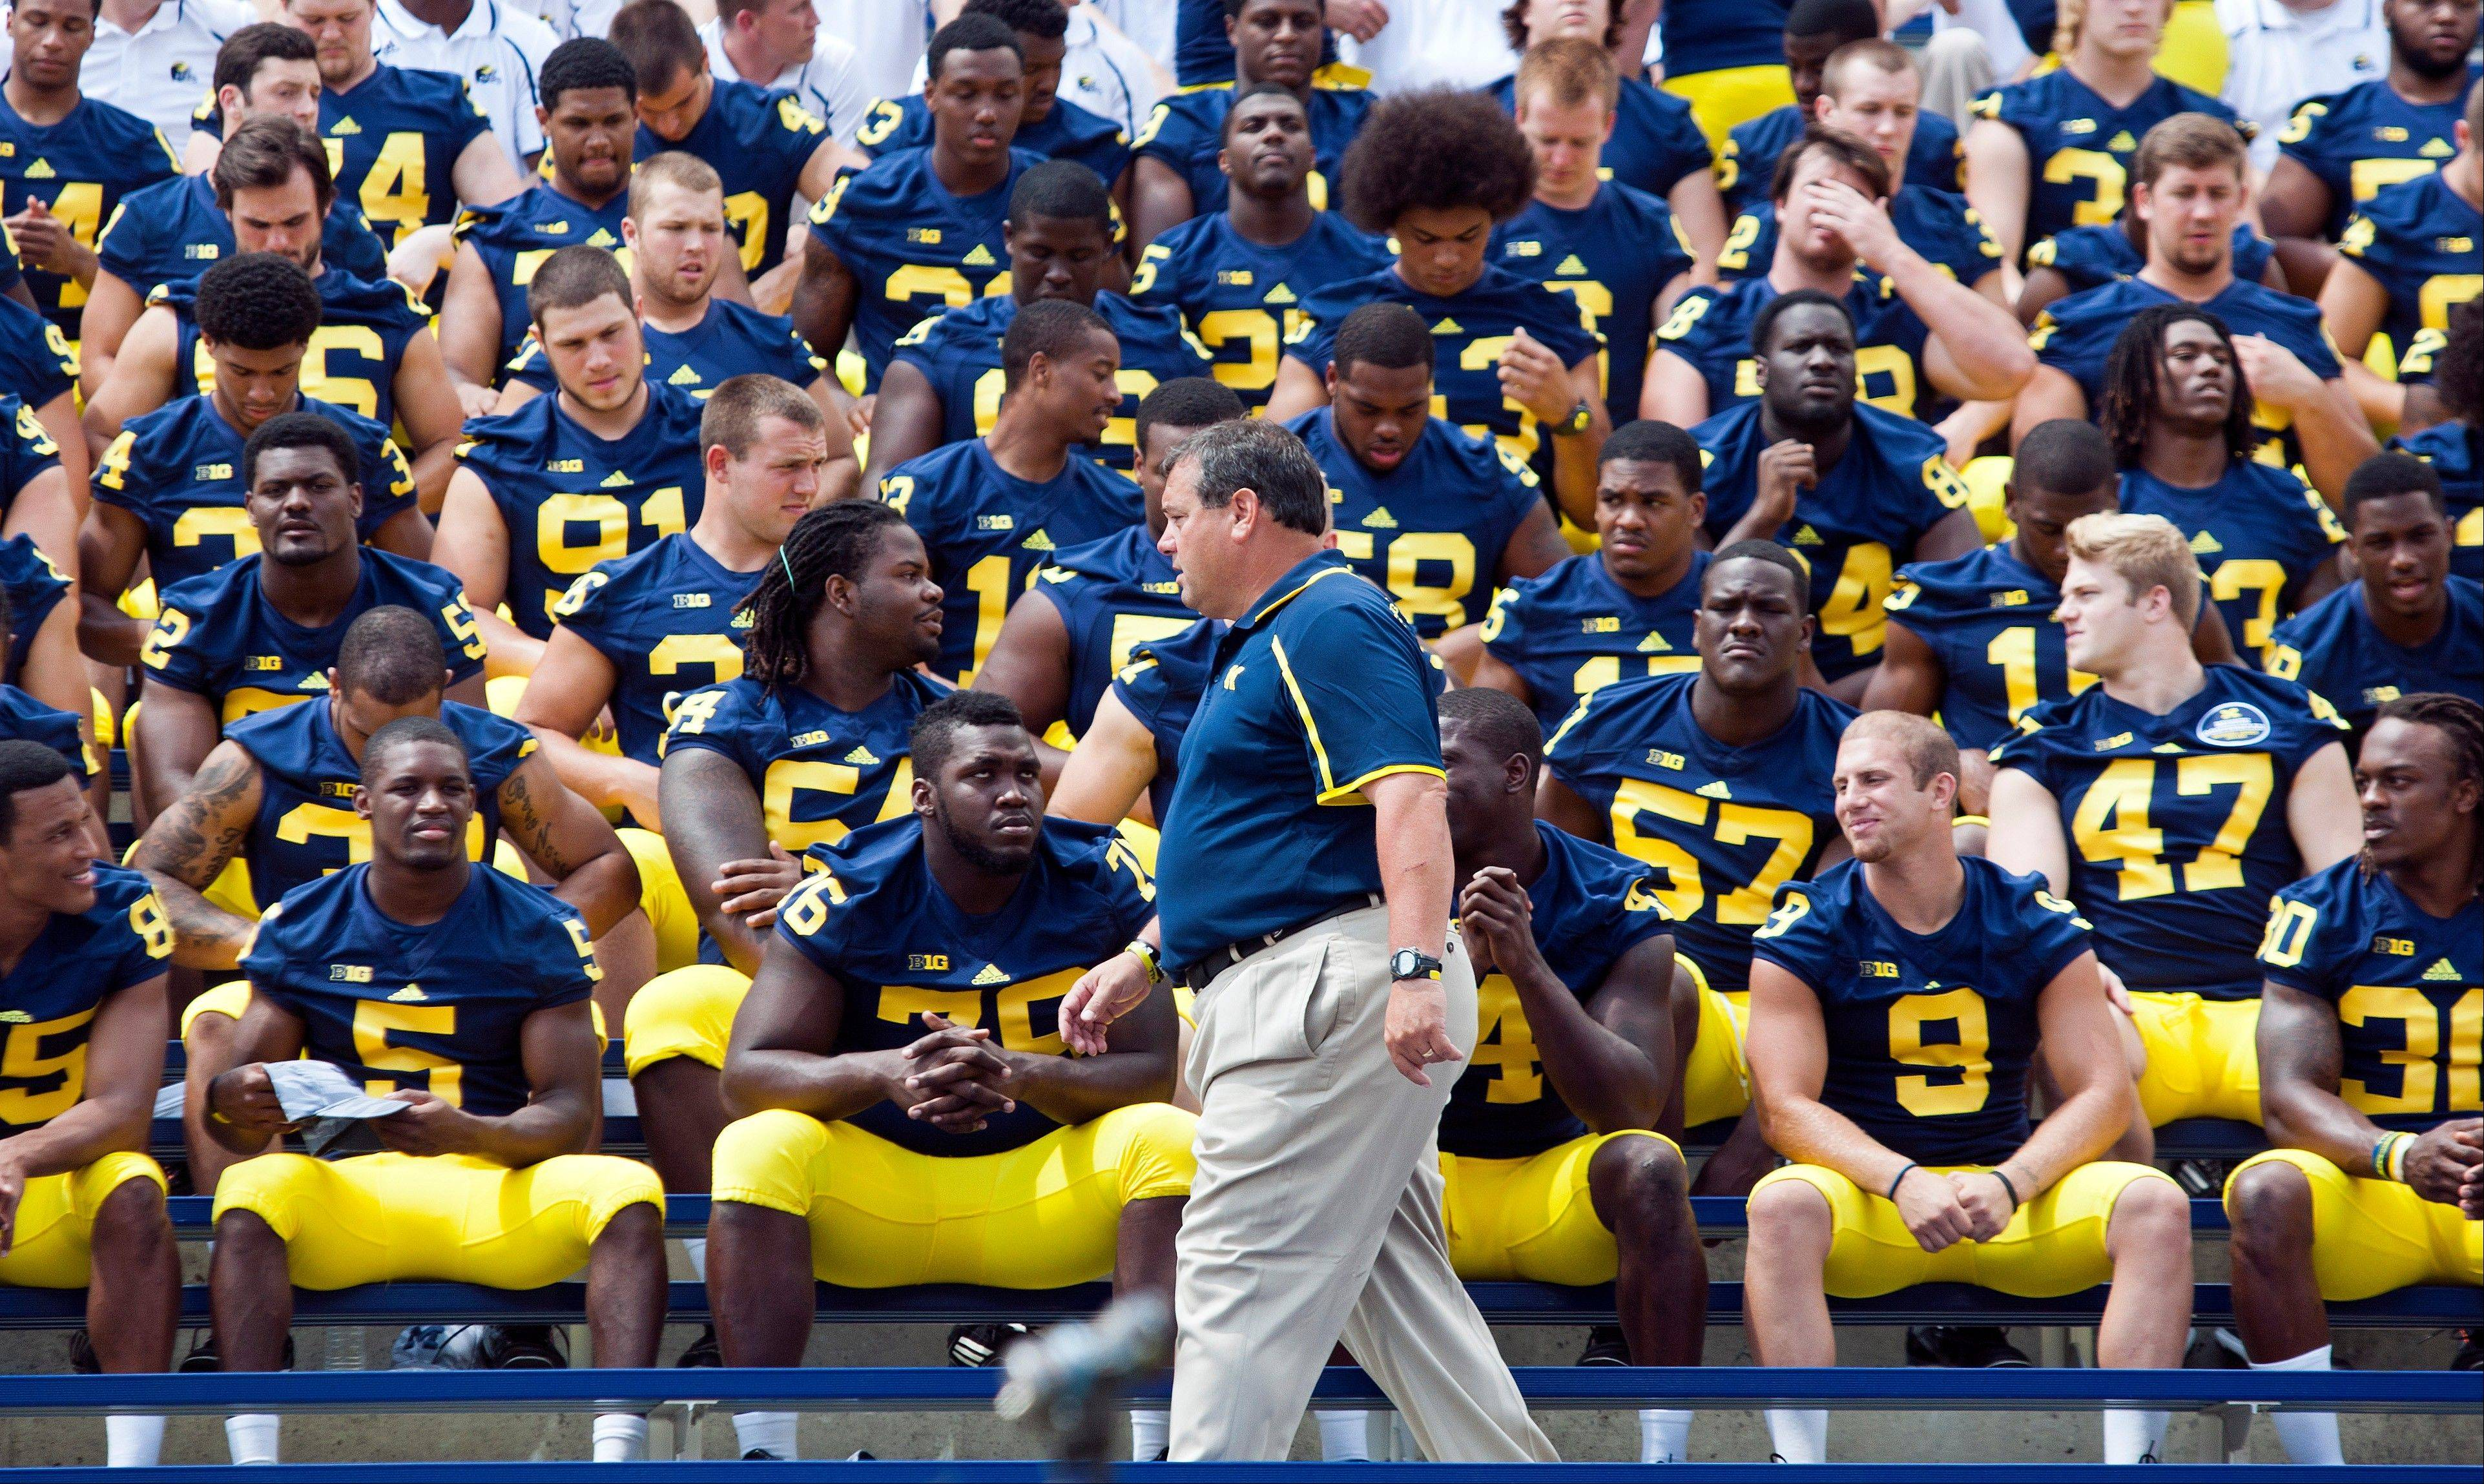 Michigan head coach Brady Hoke, front center, gets his team seated in Michigan Stadium for a team photo during media day on Sunday in Ann Arbor.